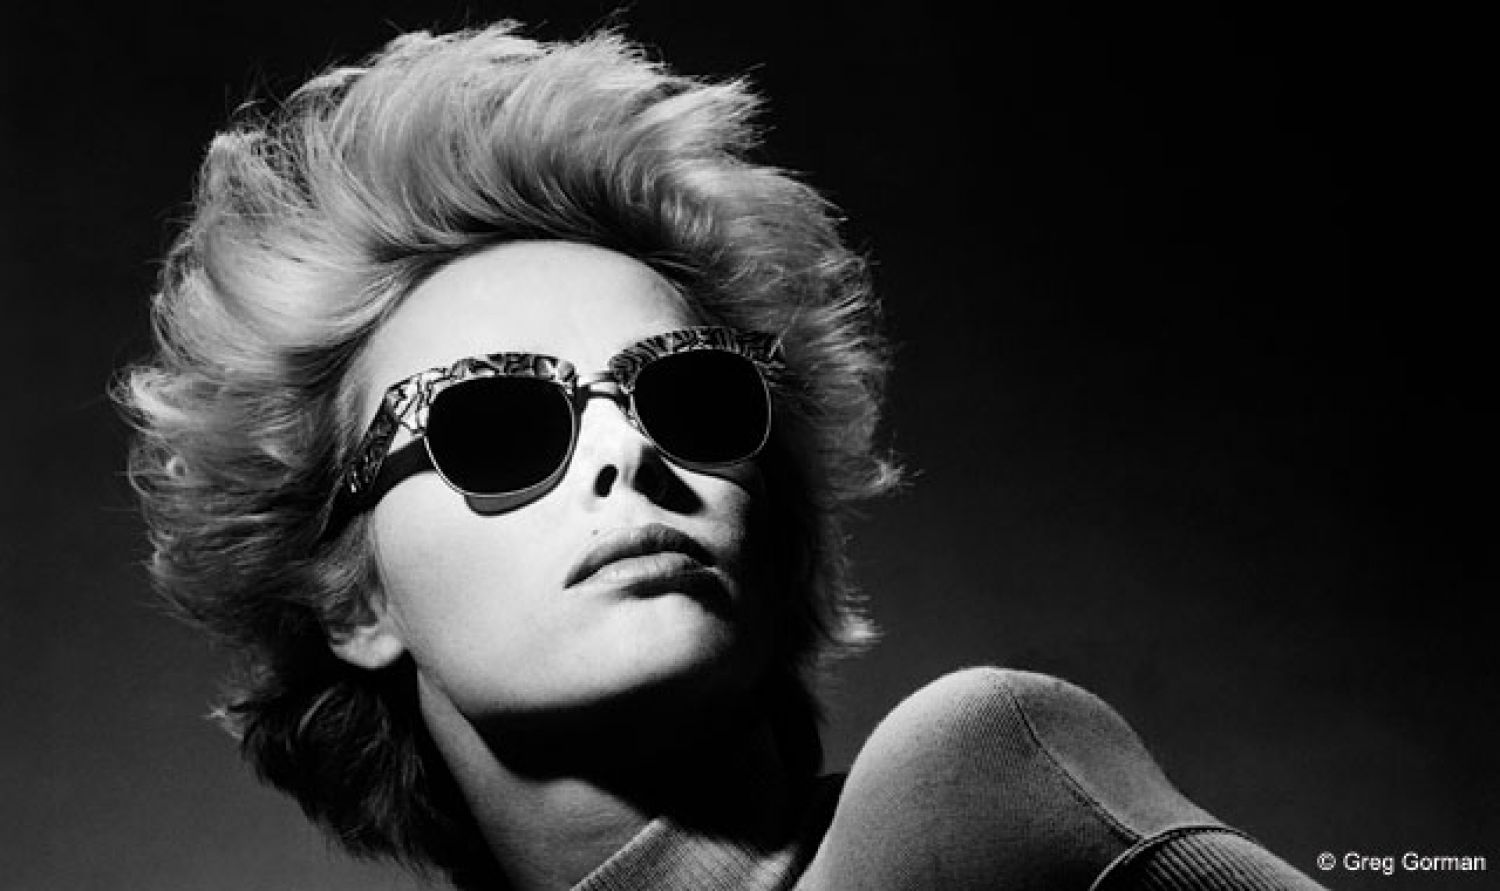 Greg Gorman has been producing dramatically lit, high-impact black-and-white images for an l.a.Eyeworks campaign that has been going strong for more than three decades. With an unprecedented amount of creative control, he has delivered photographs of artists from just about every imaginable field. Above: Model, actress and musician Brigitte Nielsen.